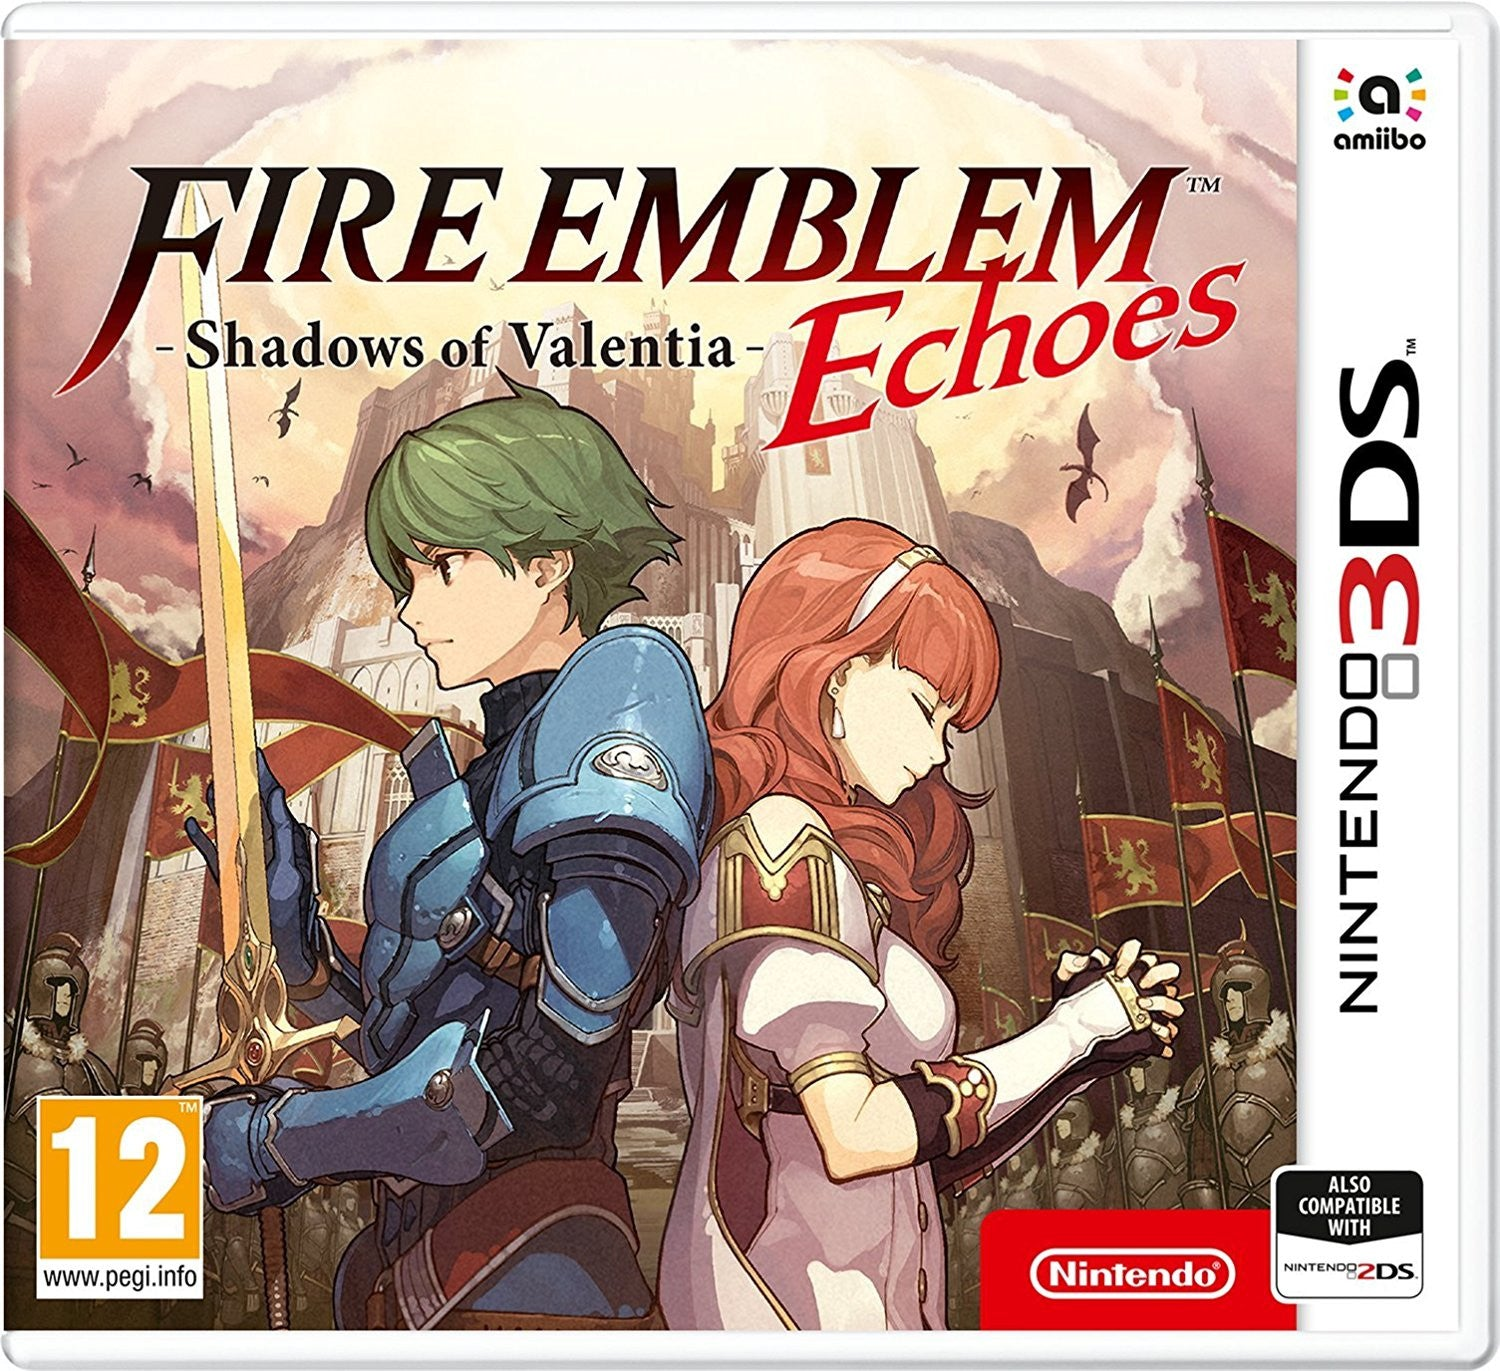 Fire Emblem Echoes: Shadows of Valentia - 3DS - Video Games by Nintendo The Chelsea Gamer